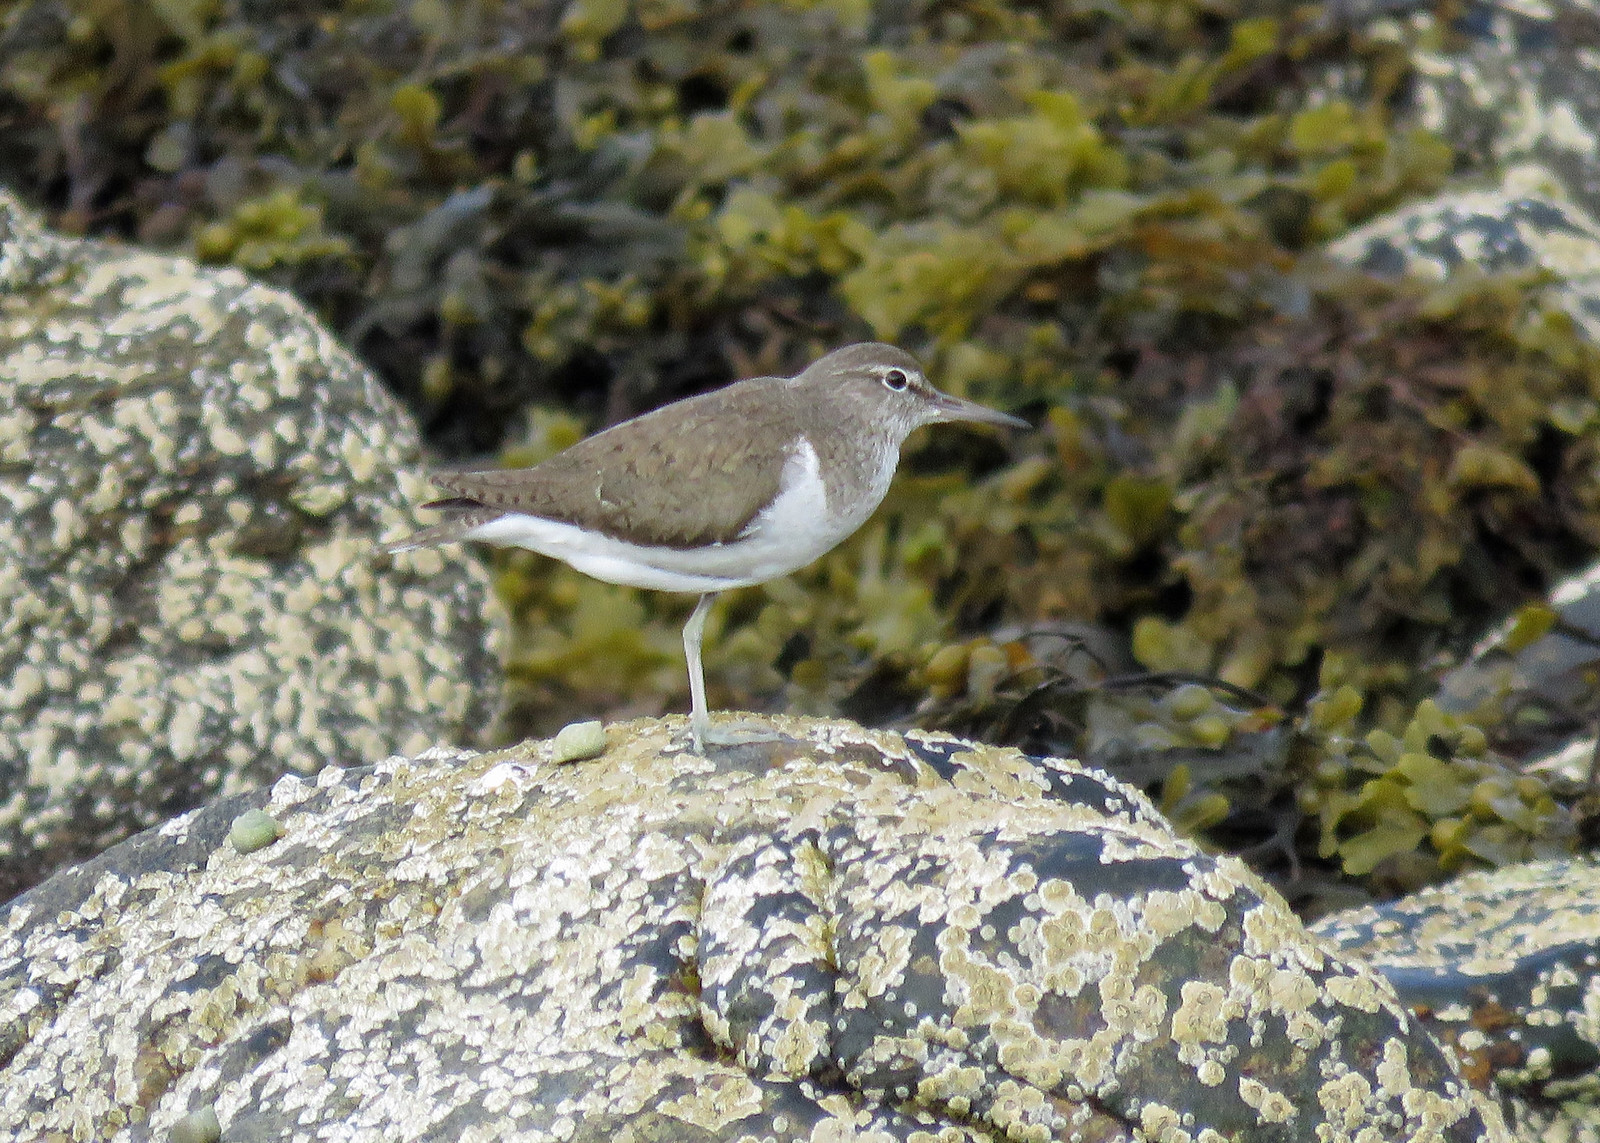 Common Sandpiper - Actitis hypoleucos